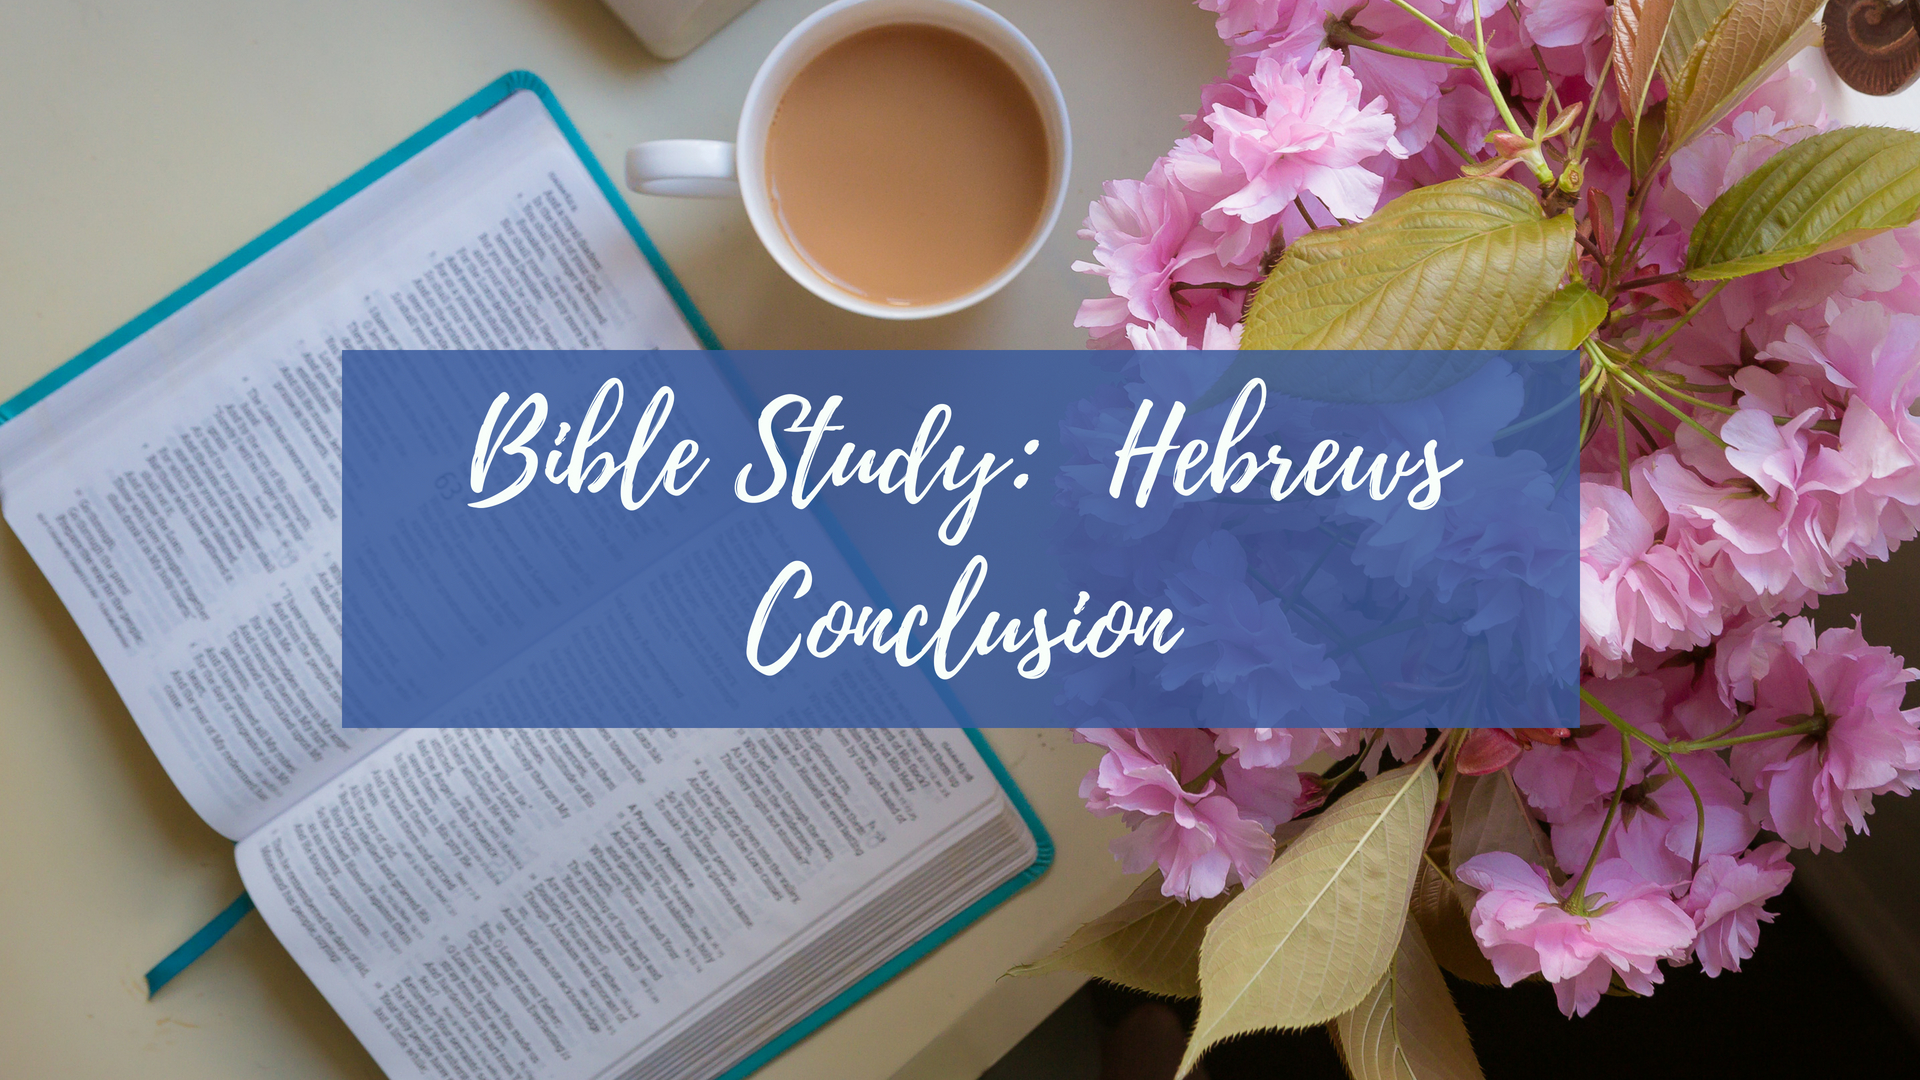 LWS Bible Study Hebrews Conclusion.jpg